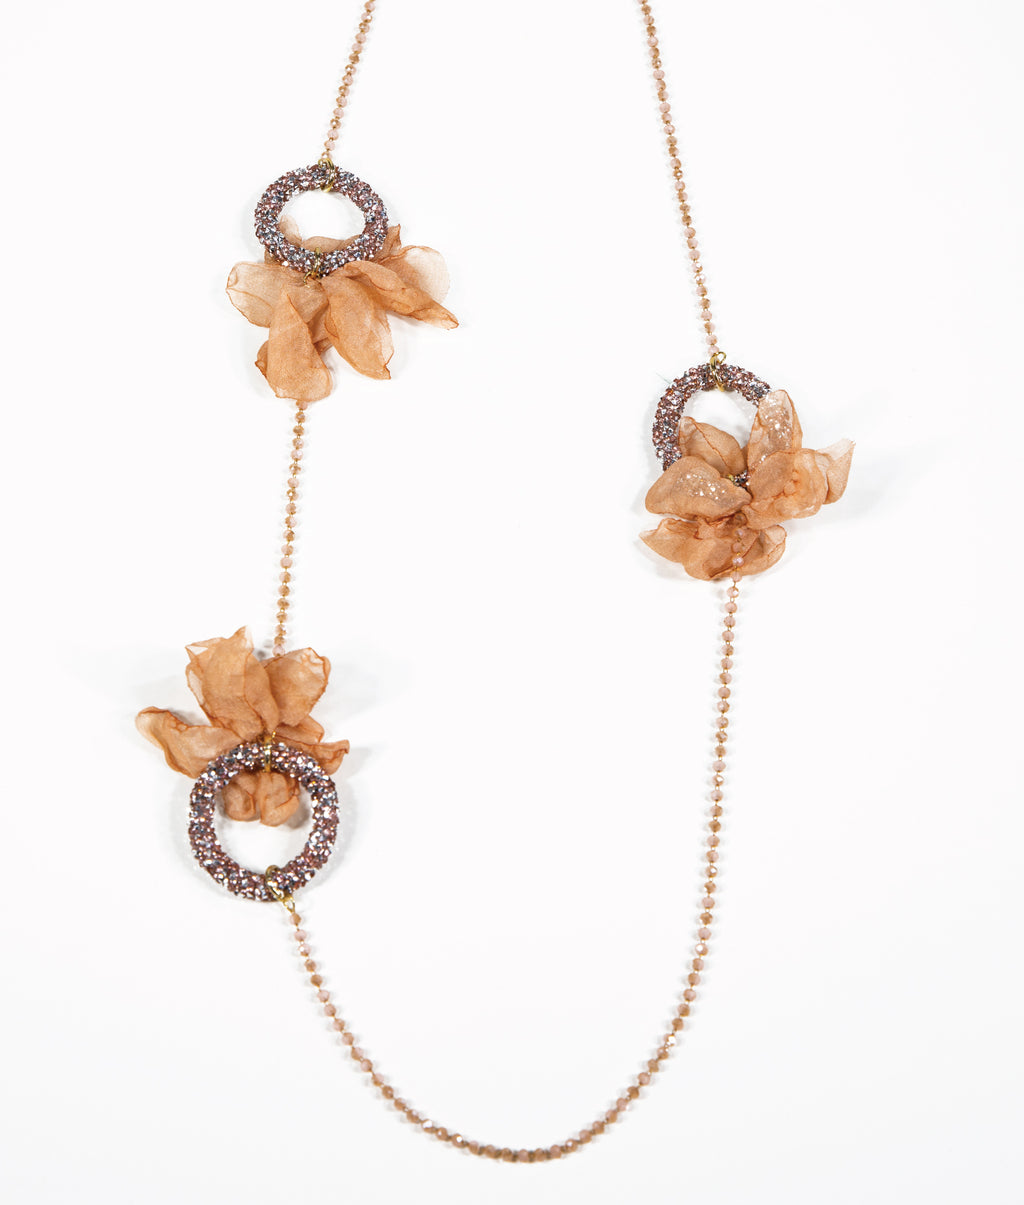 NECKLACE - Glamour Rose